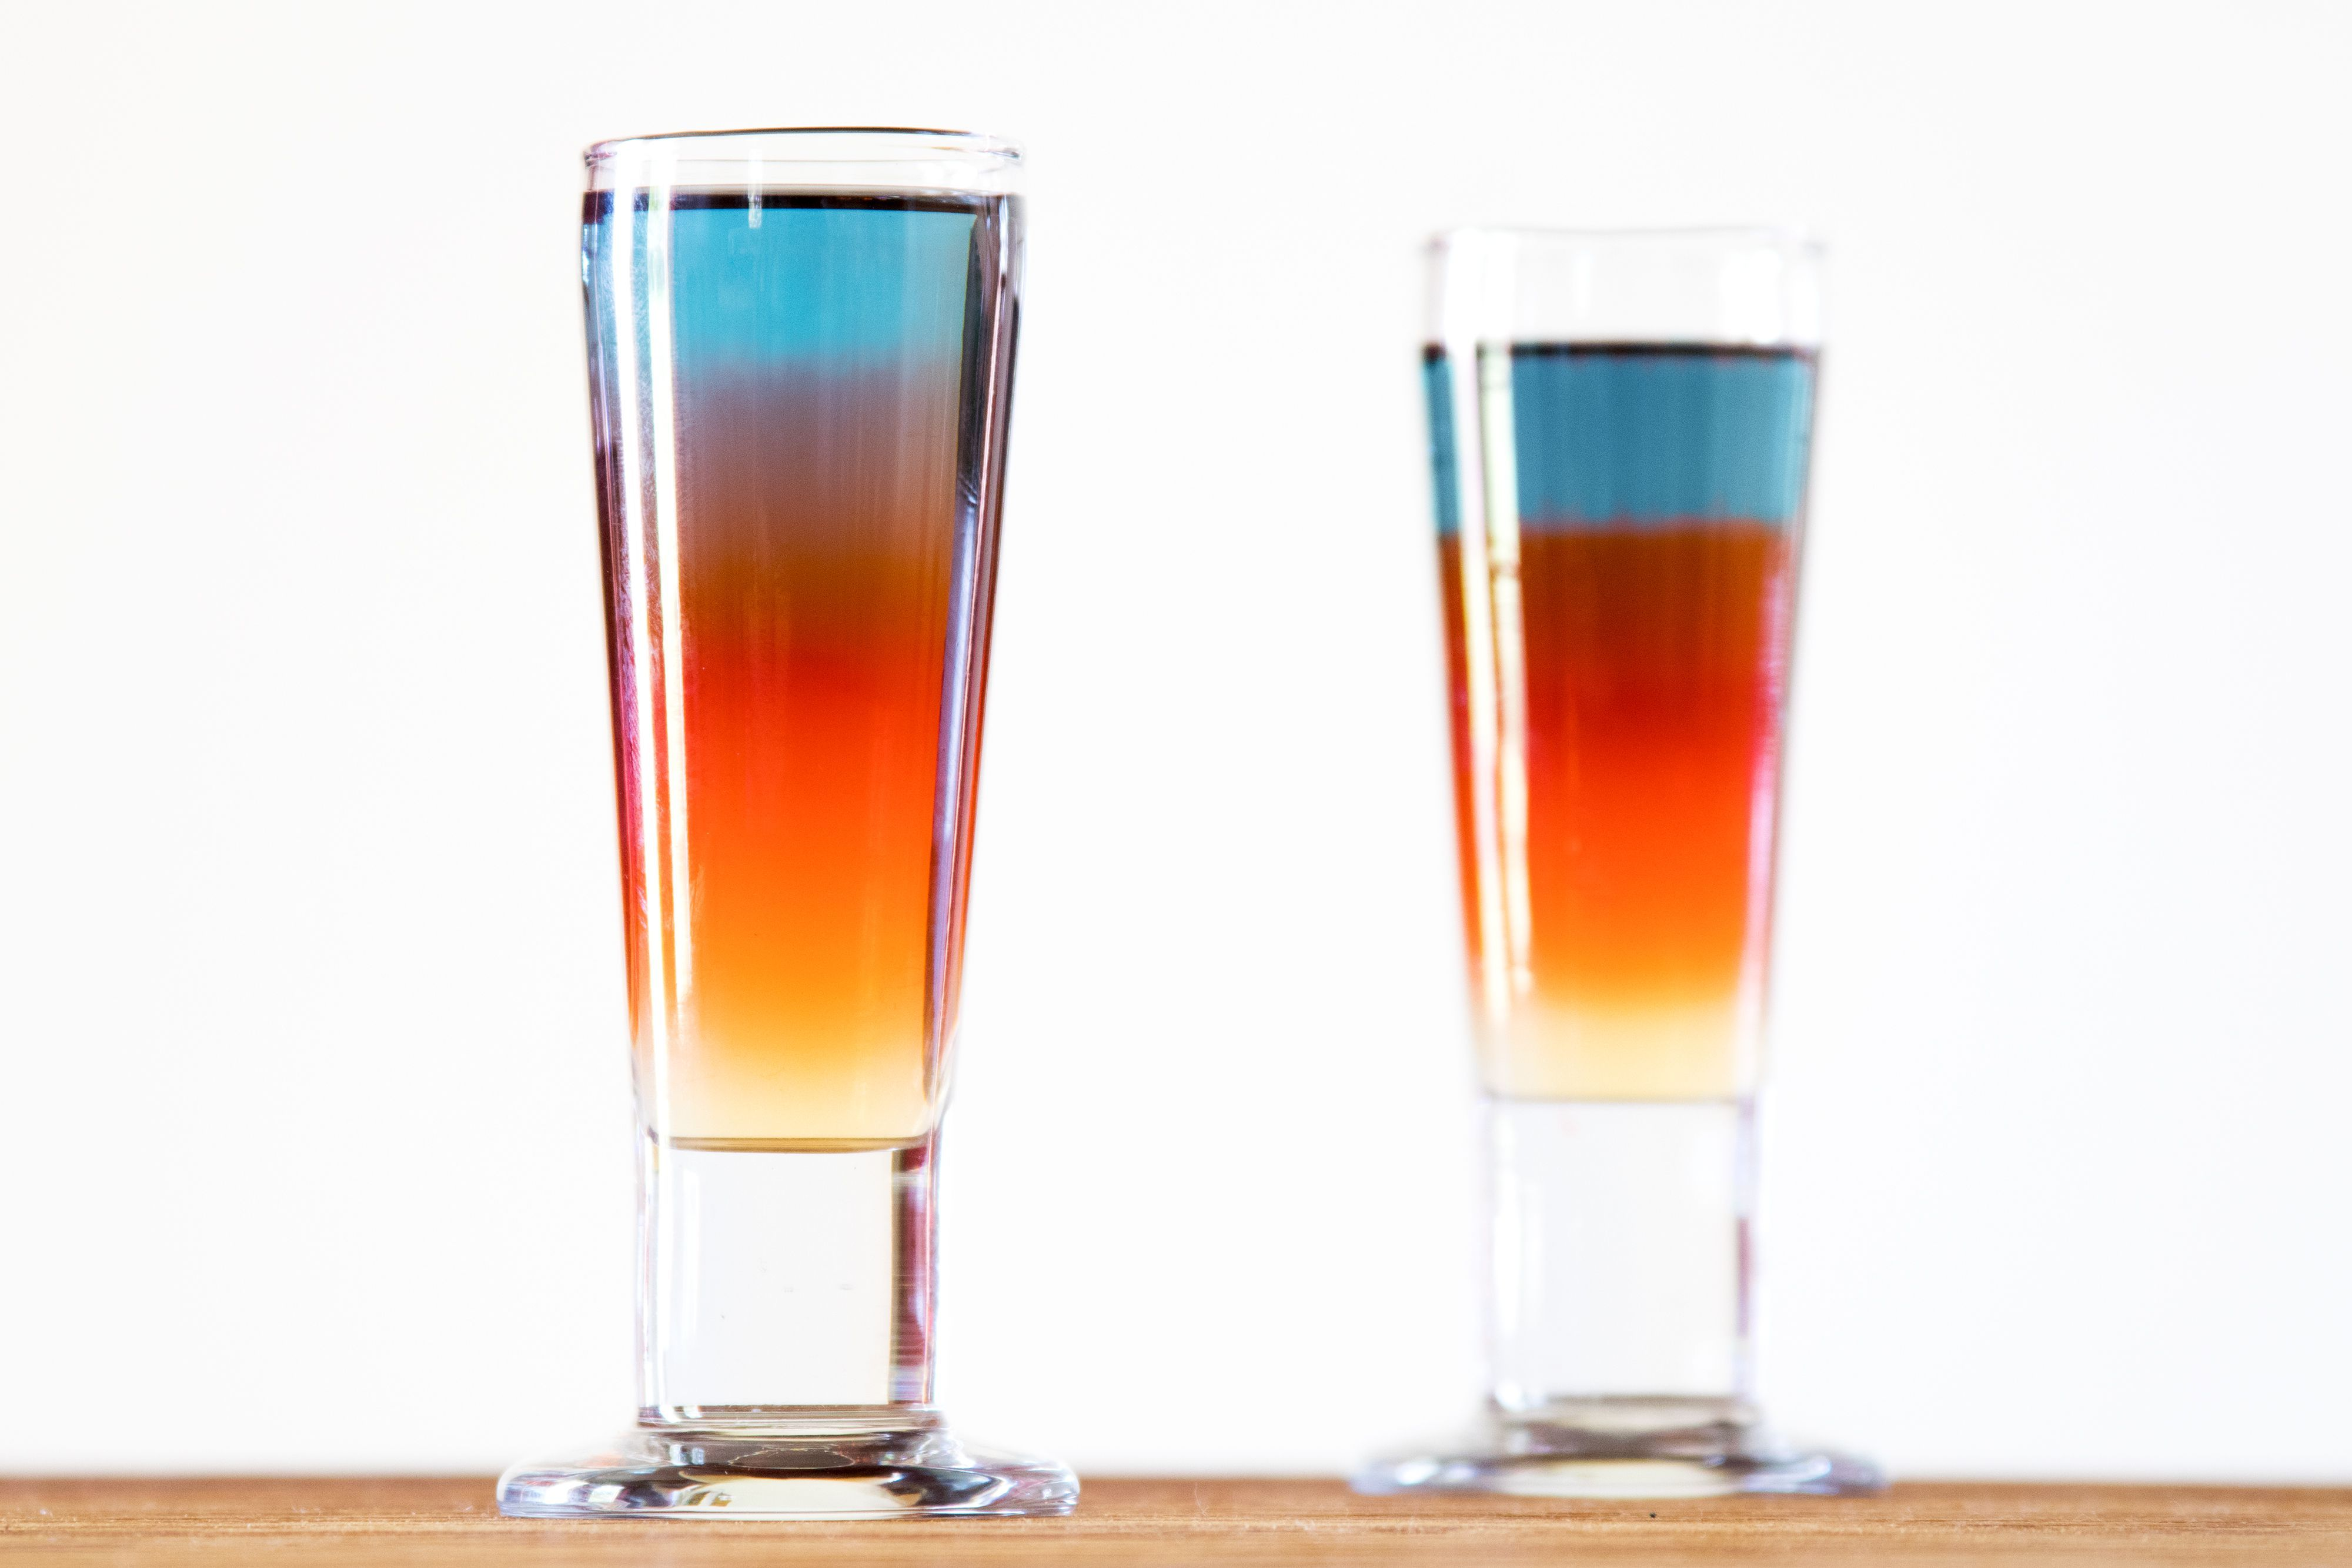 Learn How To Make An Impressive Looking And Delicious Superman Shot This Shooter Recipe Includes Blue Red And G In 2021 Shooter Recipes Layered Shots Superman Drink